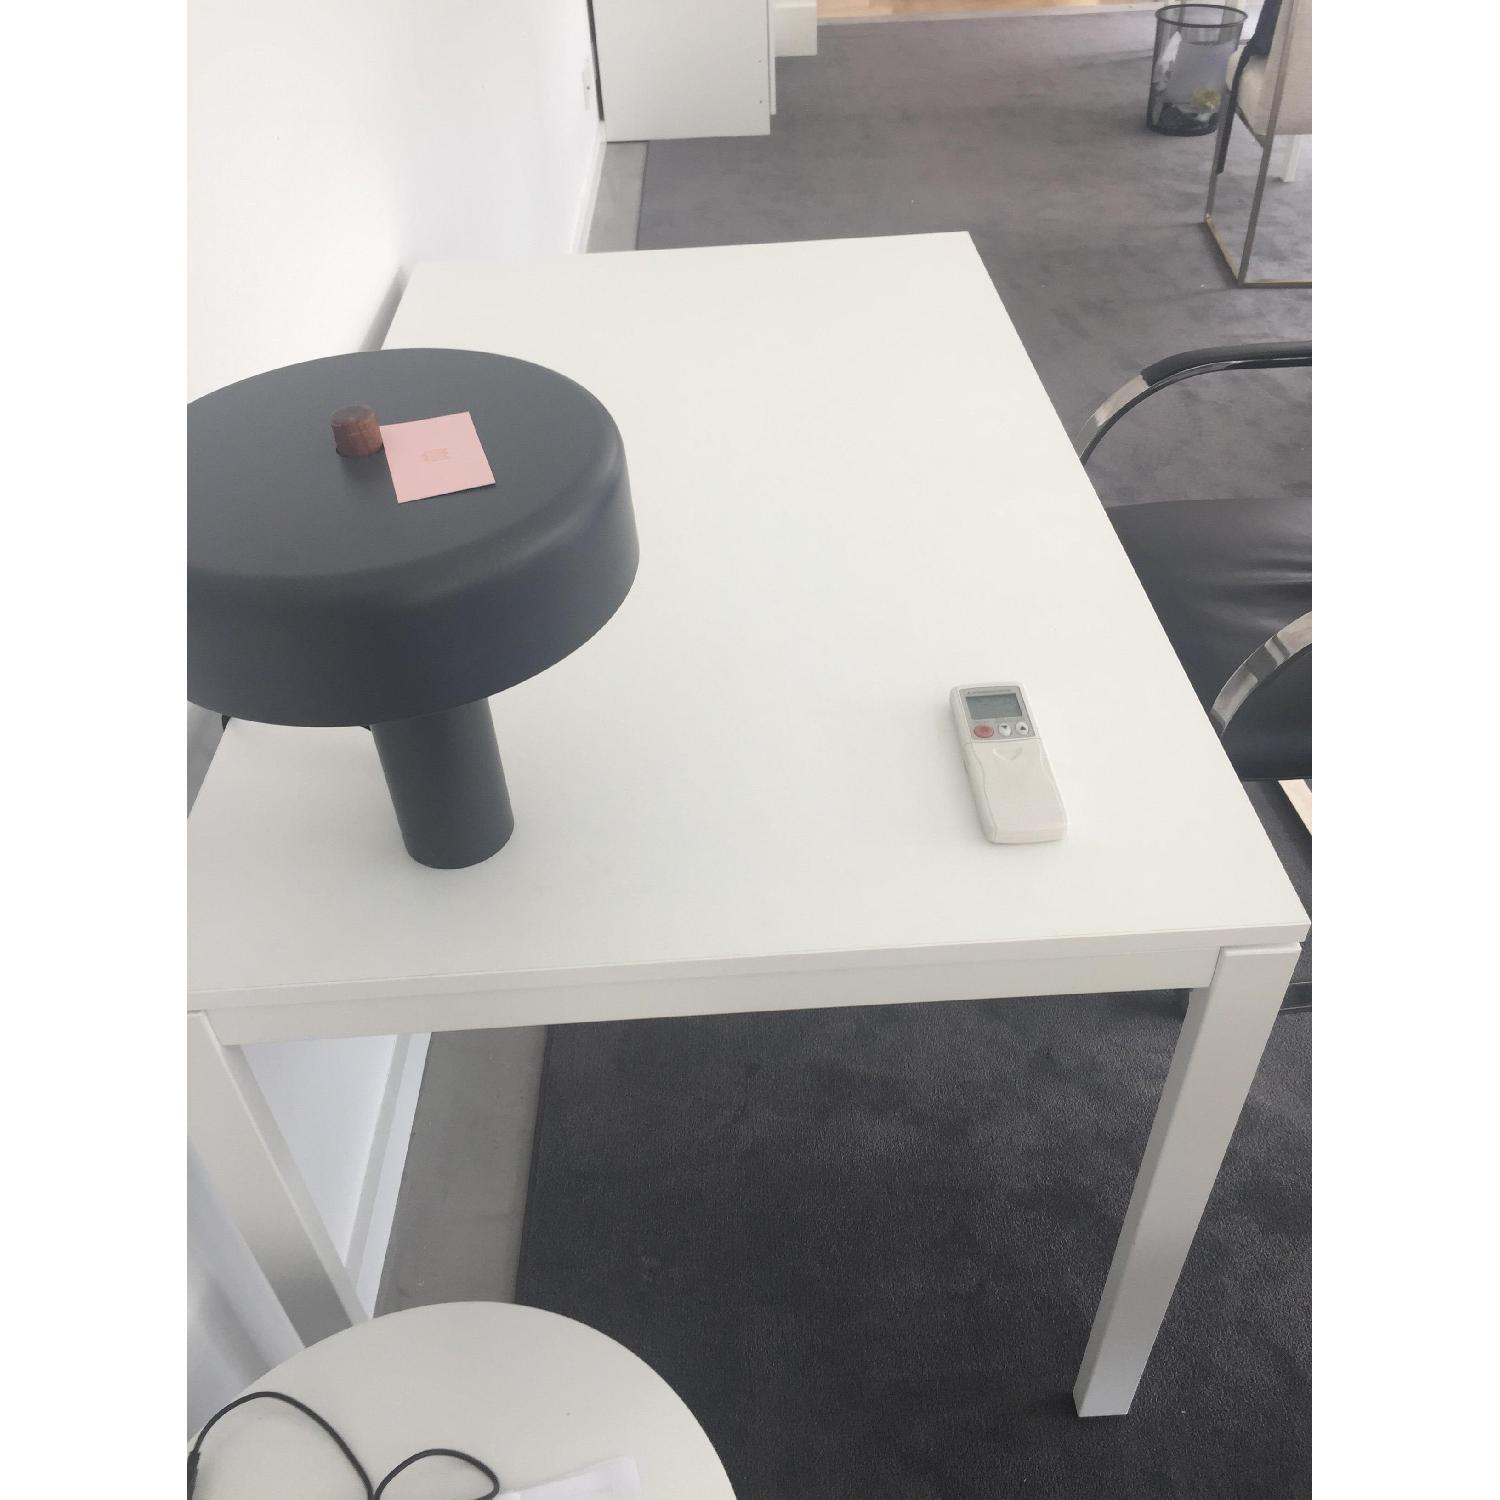 Ikea Meltorp Table/Desk-1